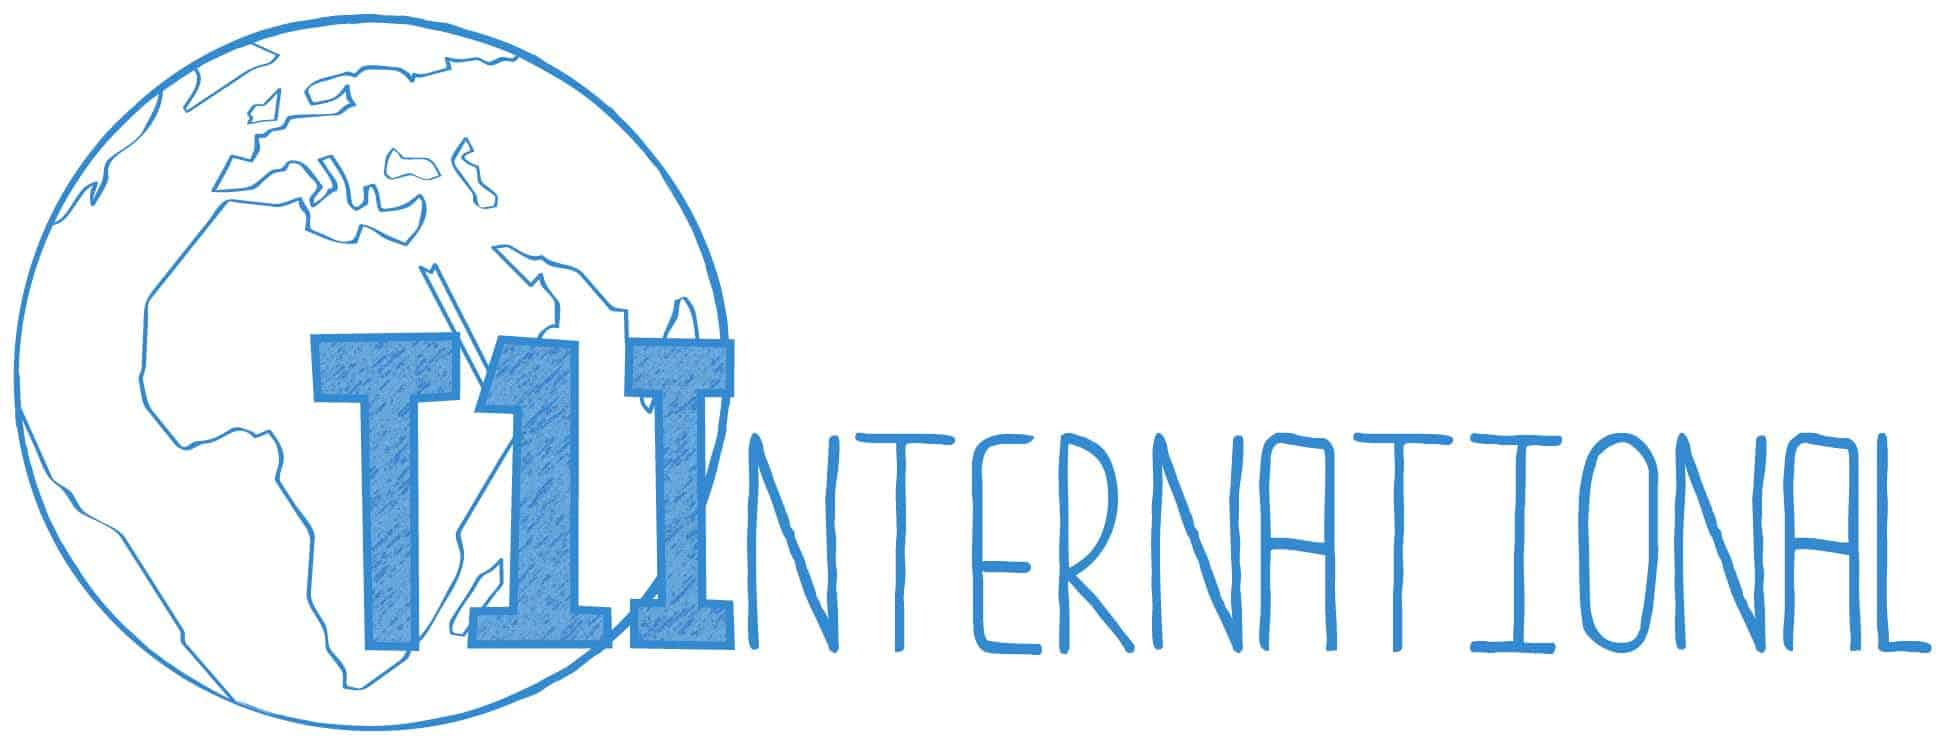 t1international-logo-clear